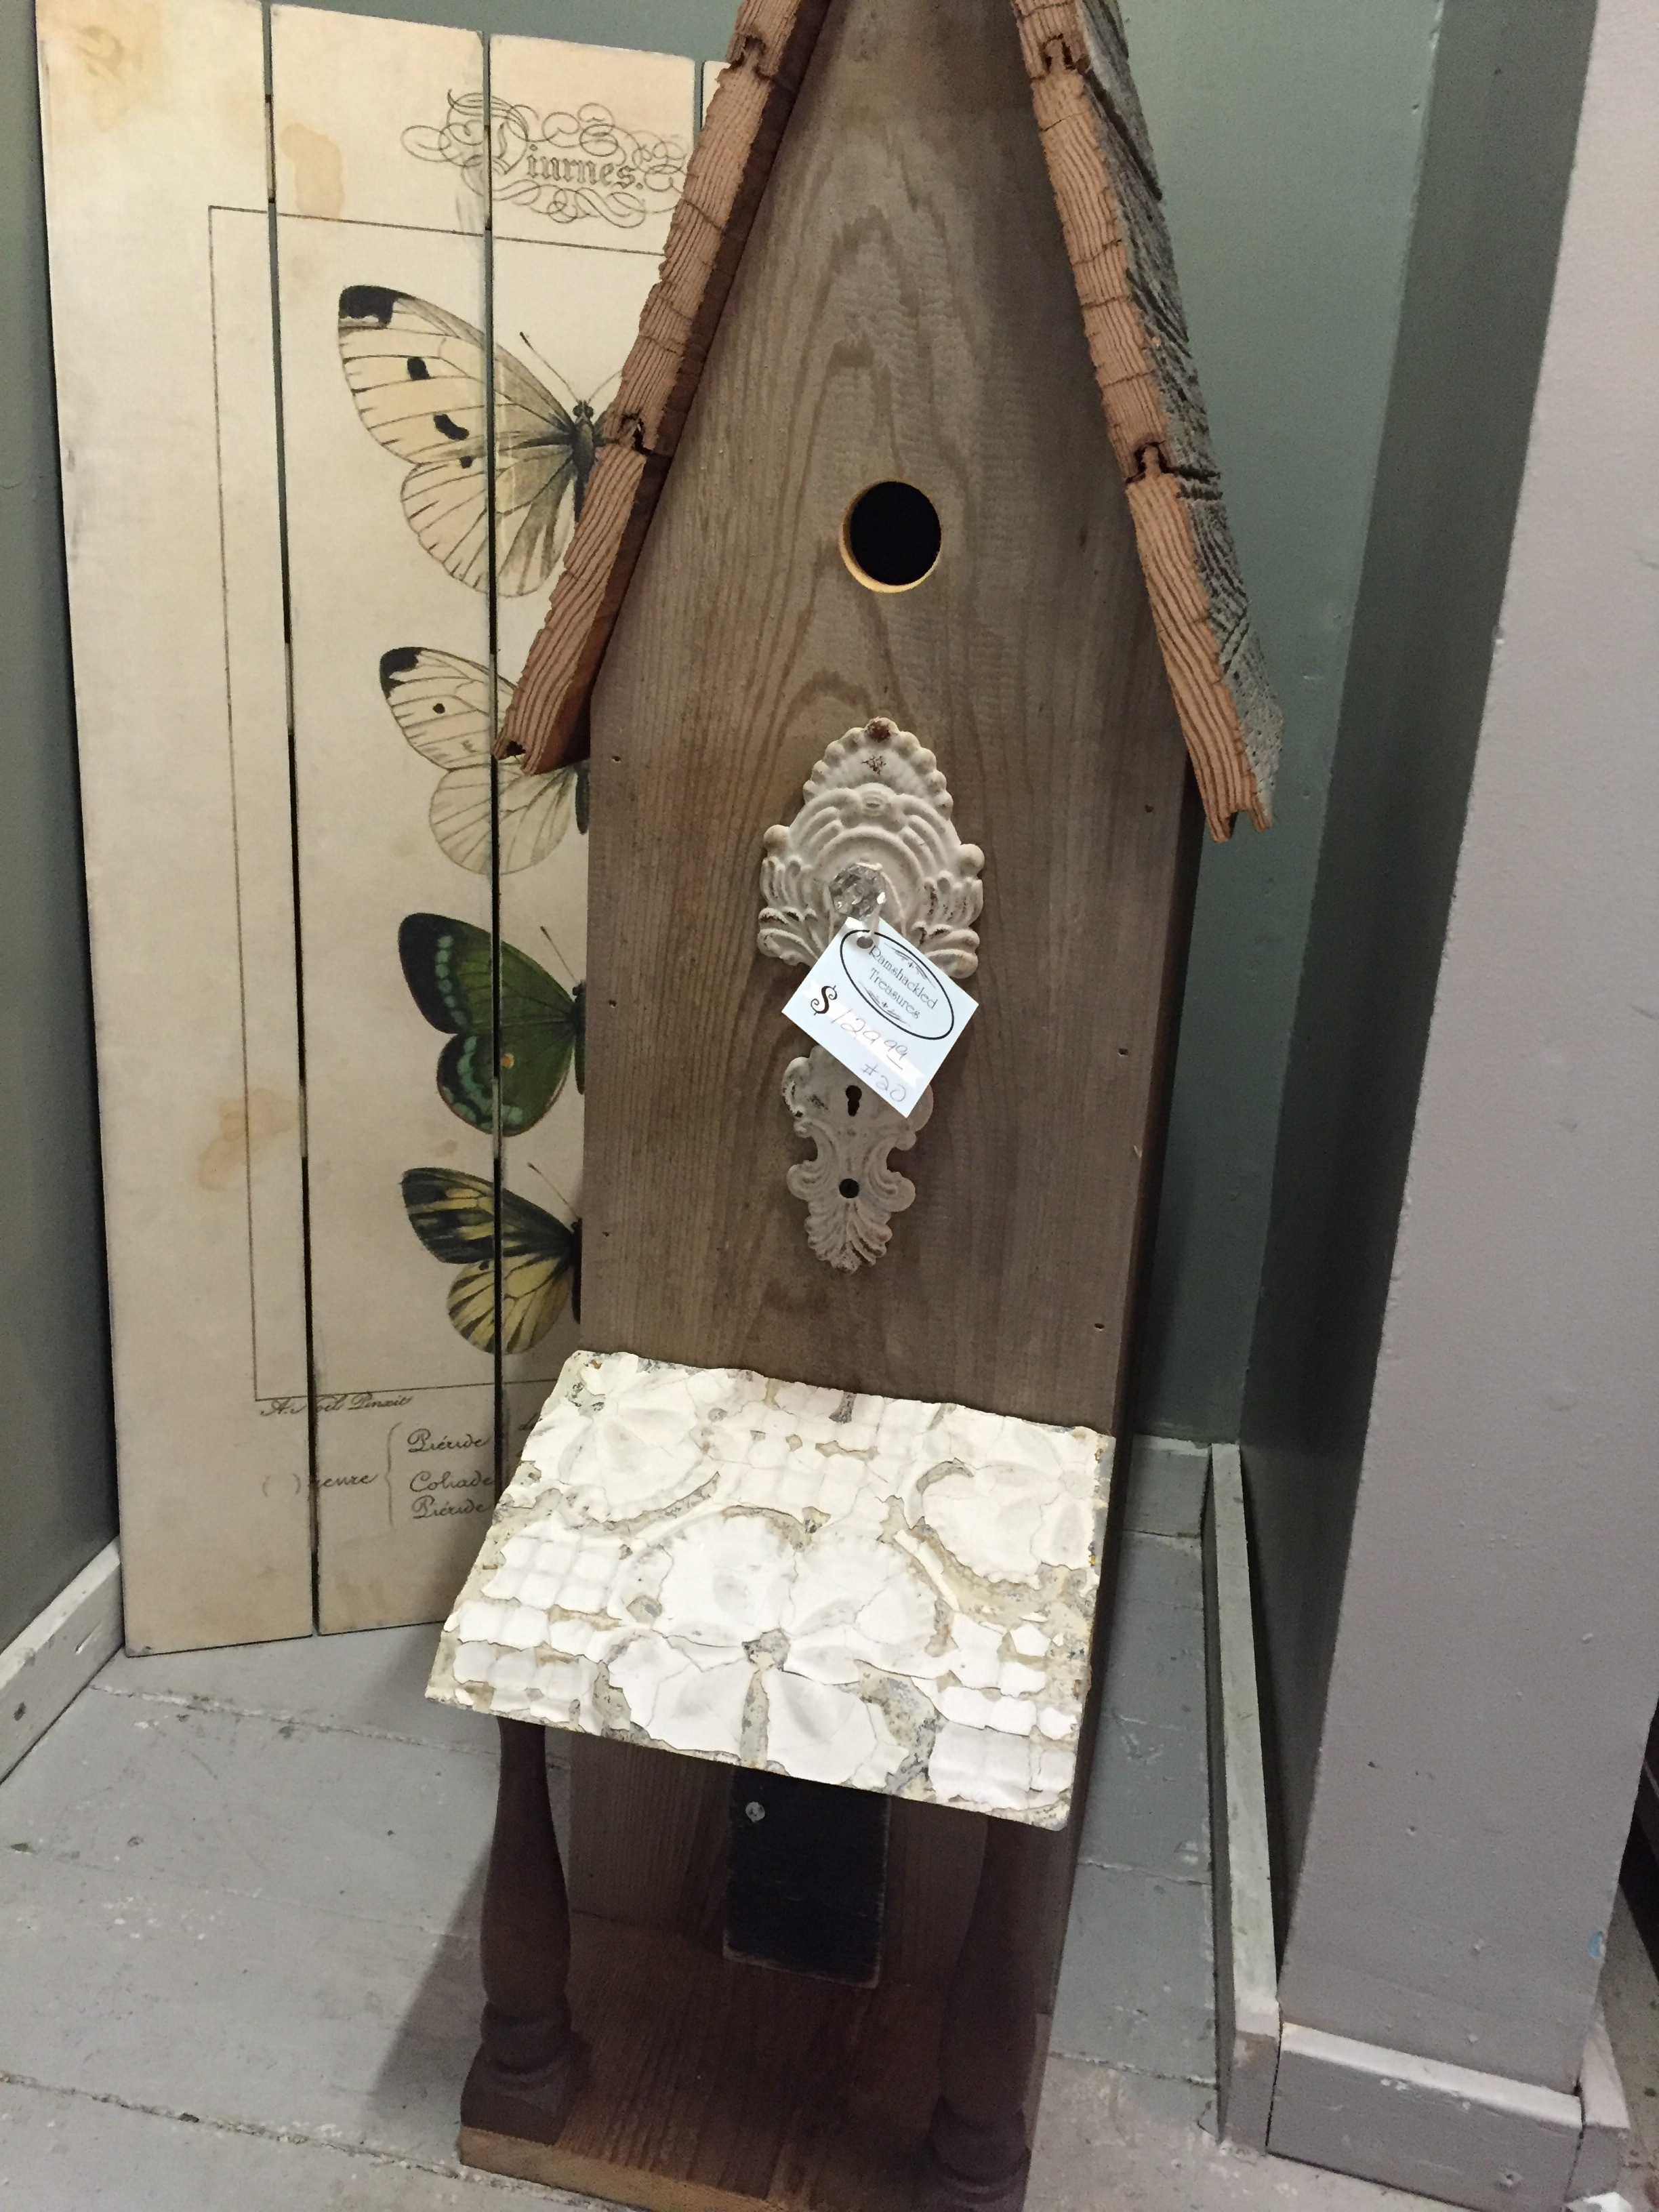 13. Add some texture and height to any space with on of our handmade birdhouses. We love the salvage elements!